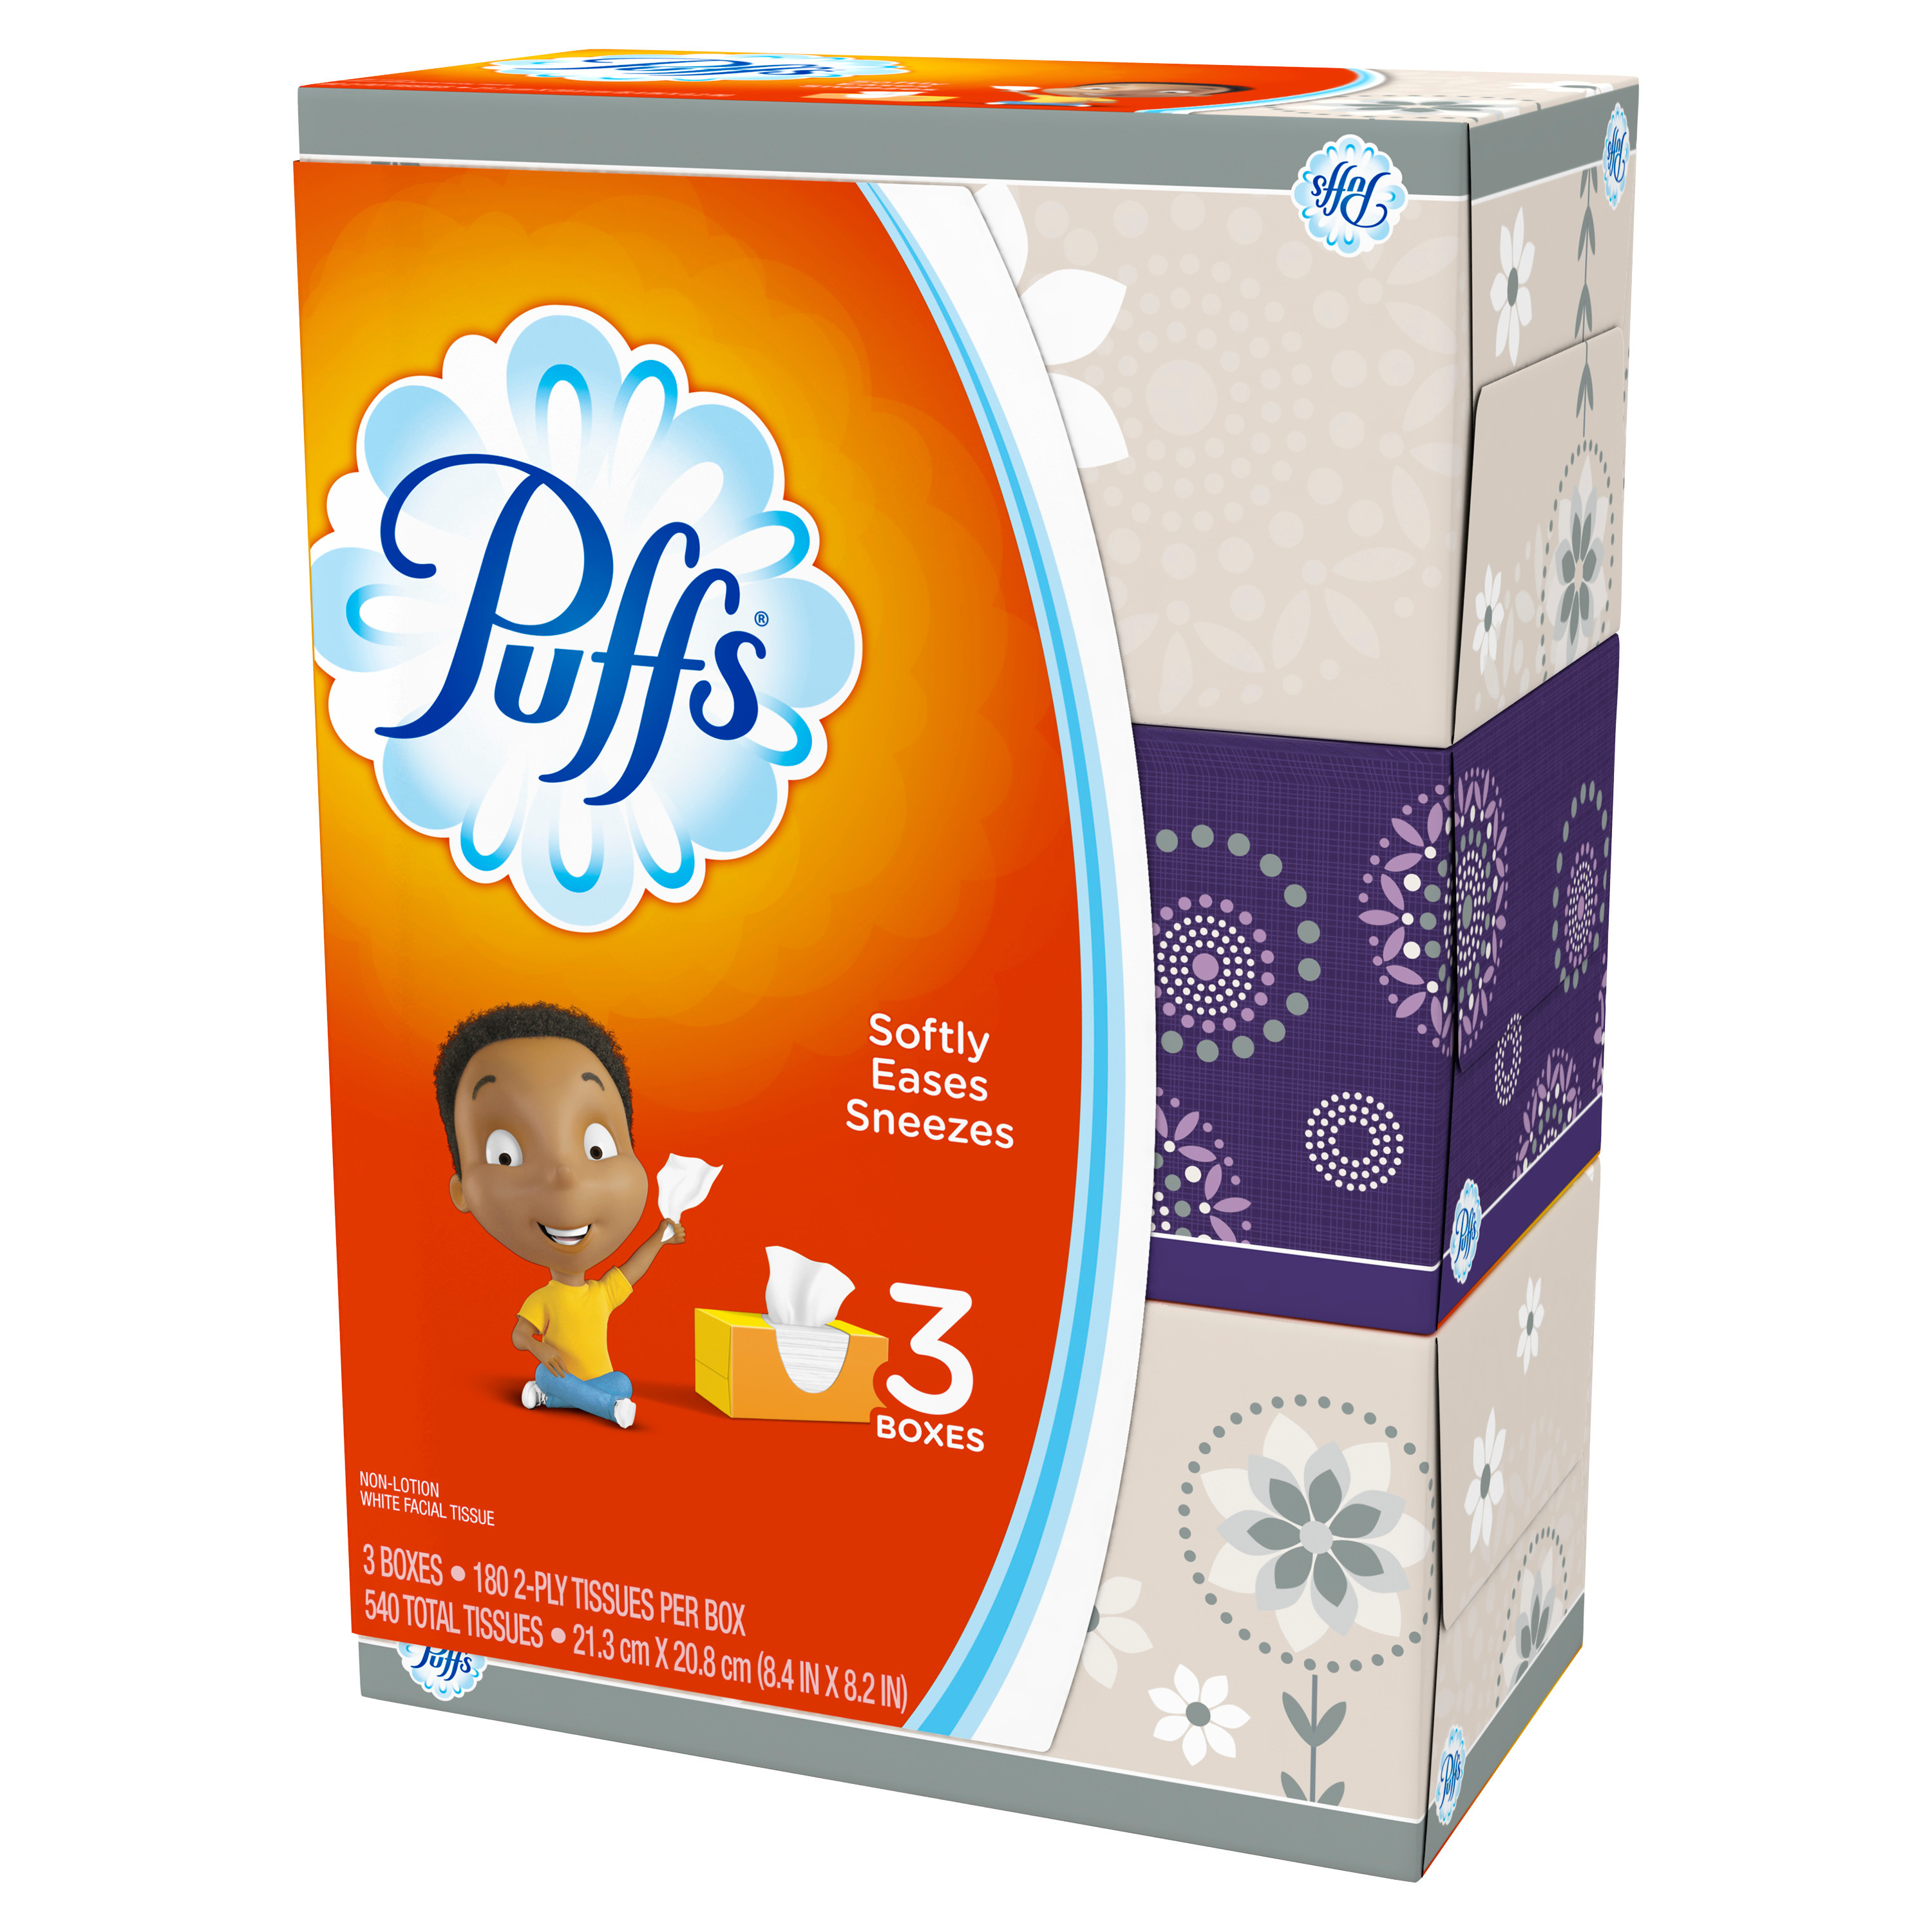 Puffs Basic Facial Tissues, 3 family boxes, 180 tissues per box -PGC87615